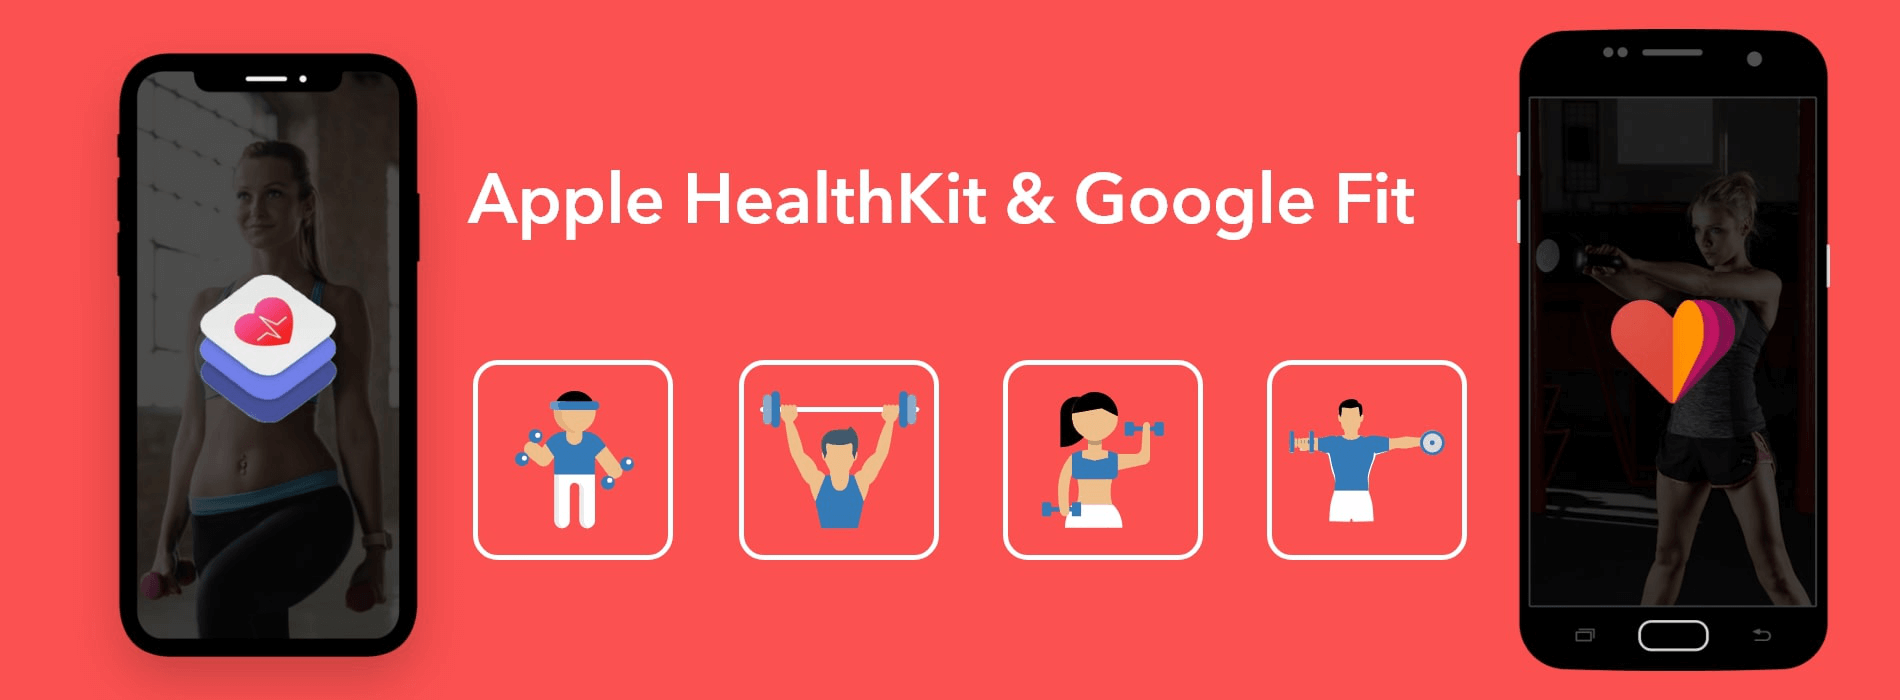 Healthcare and Fitness Apps using HealthKit and Google Fit